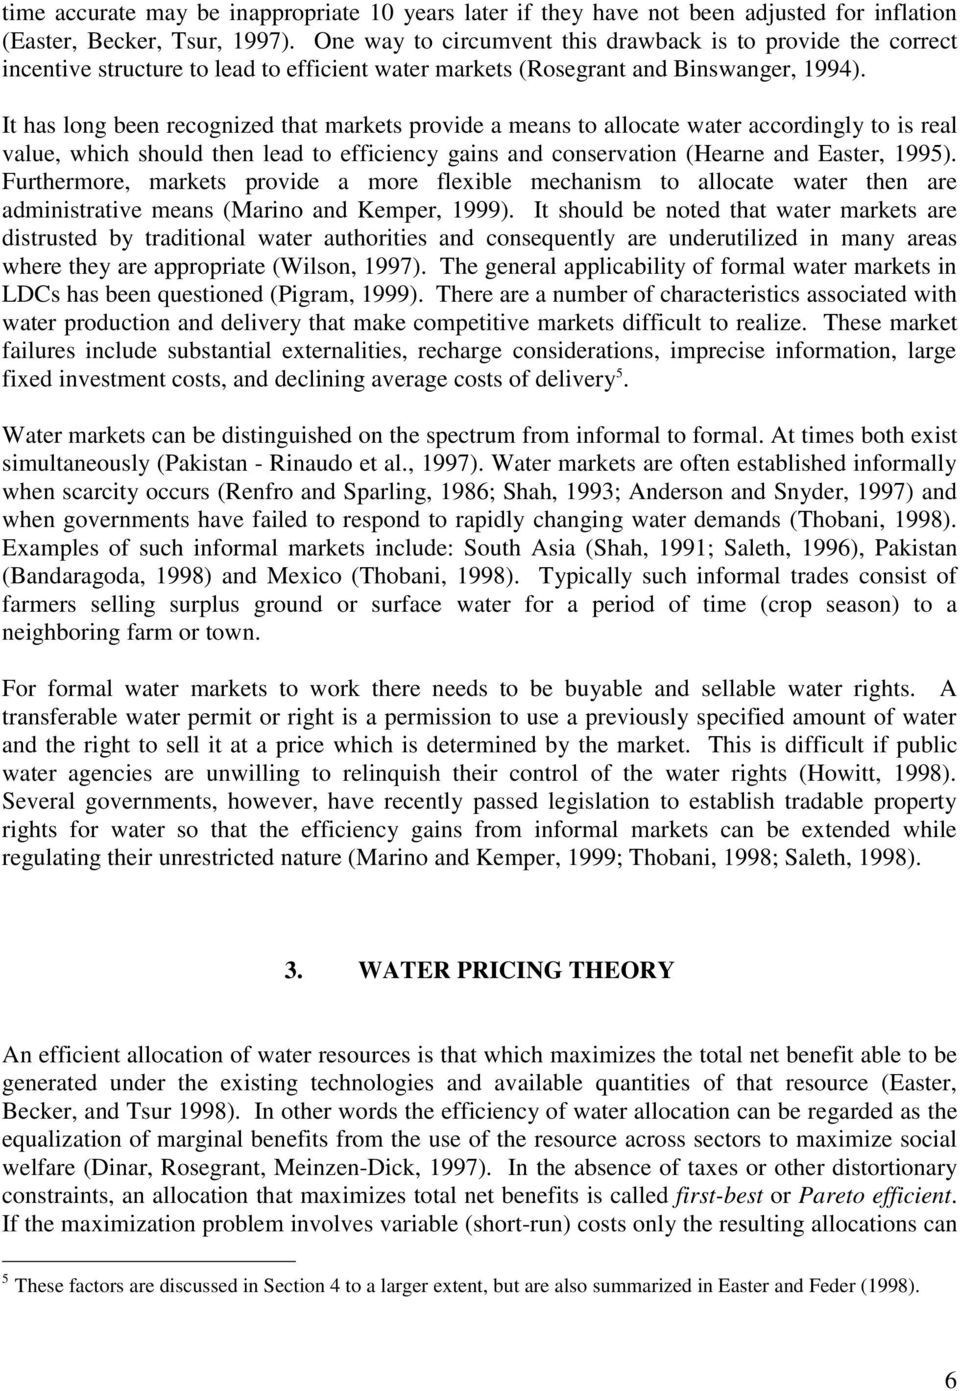 It has long been recognized that markets provide a means to allocate water accordingly to is real value, which should then lead to efficiency gains and conservation (Hearne and Easter, 1995).